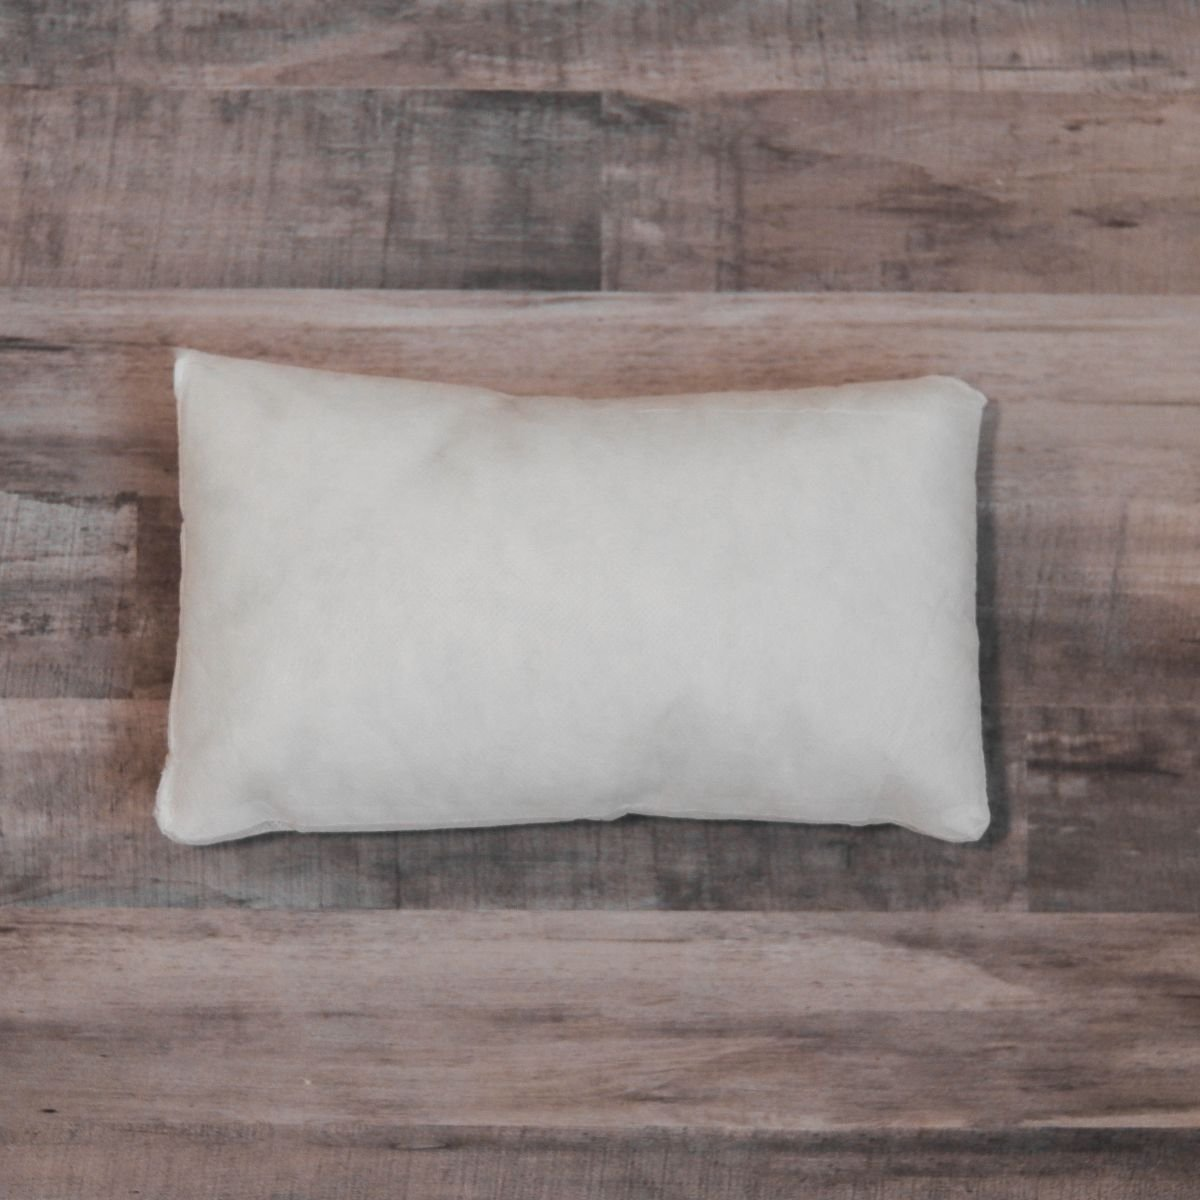 5.5x9.5 inch pillow insert